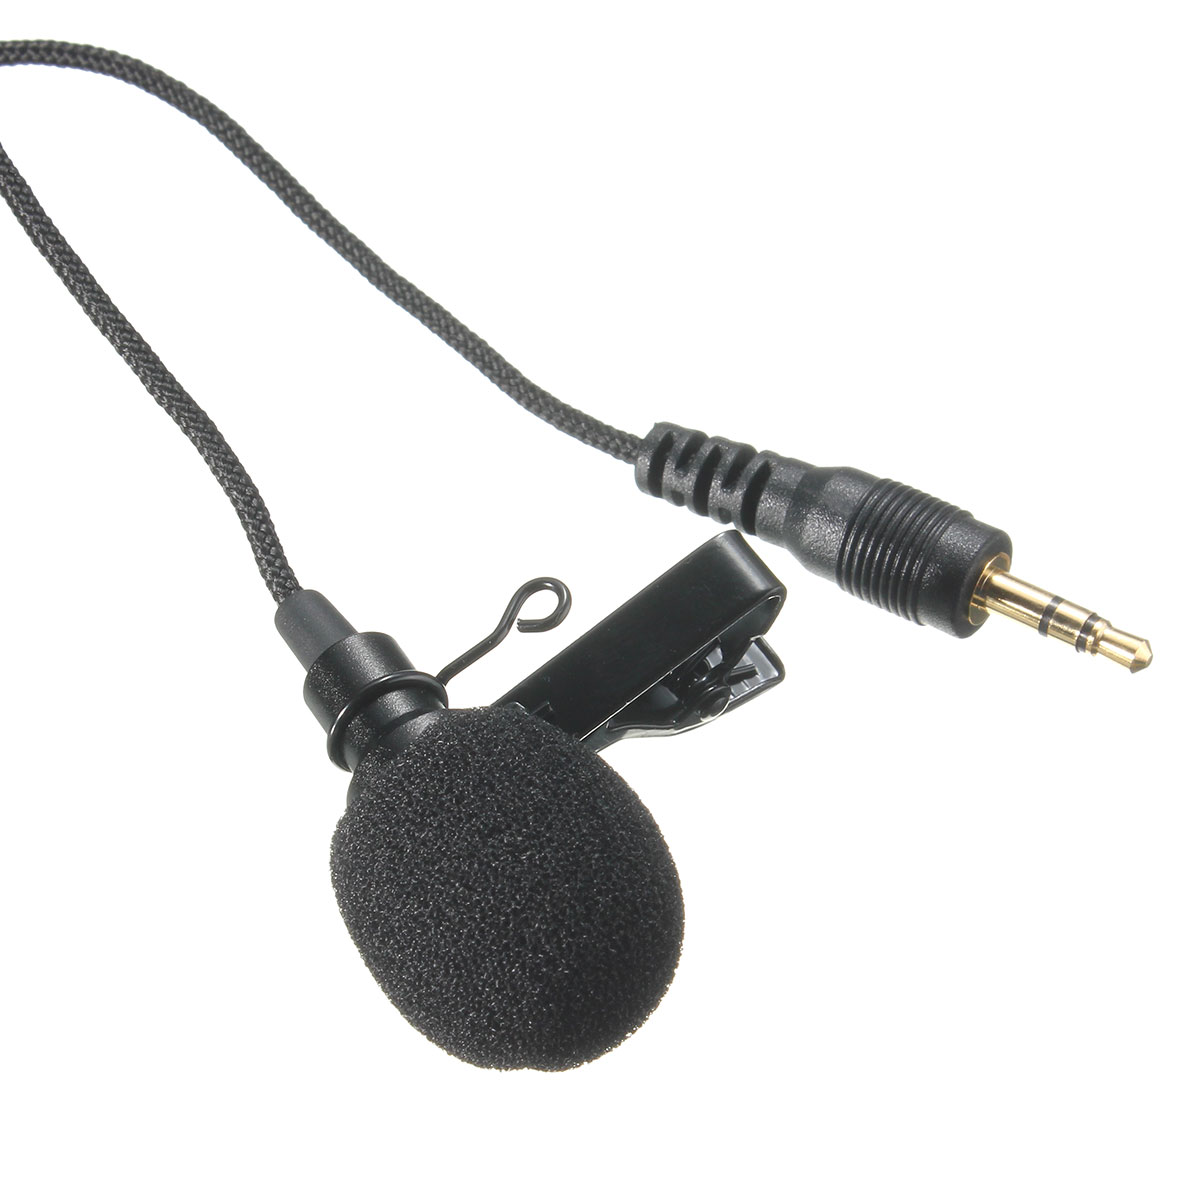 LEORY Mini 2.4m 3.5mm Jack  Omnidirectional Metal Microphone  Lavalier Tie Clip Microphone Audio Mic For Speech Leture